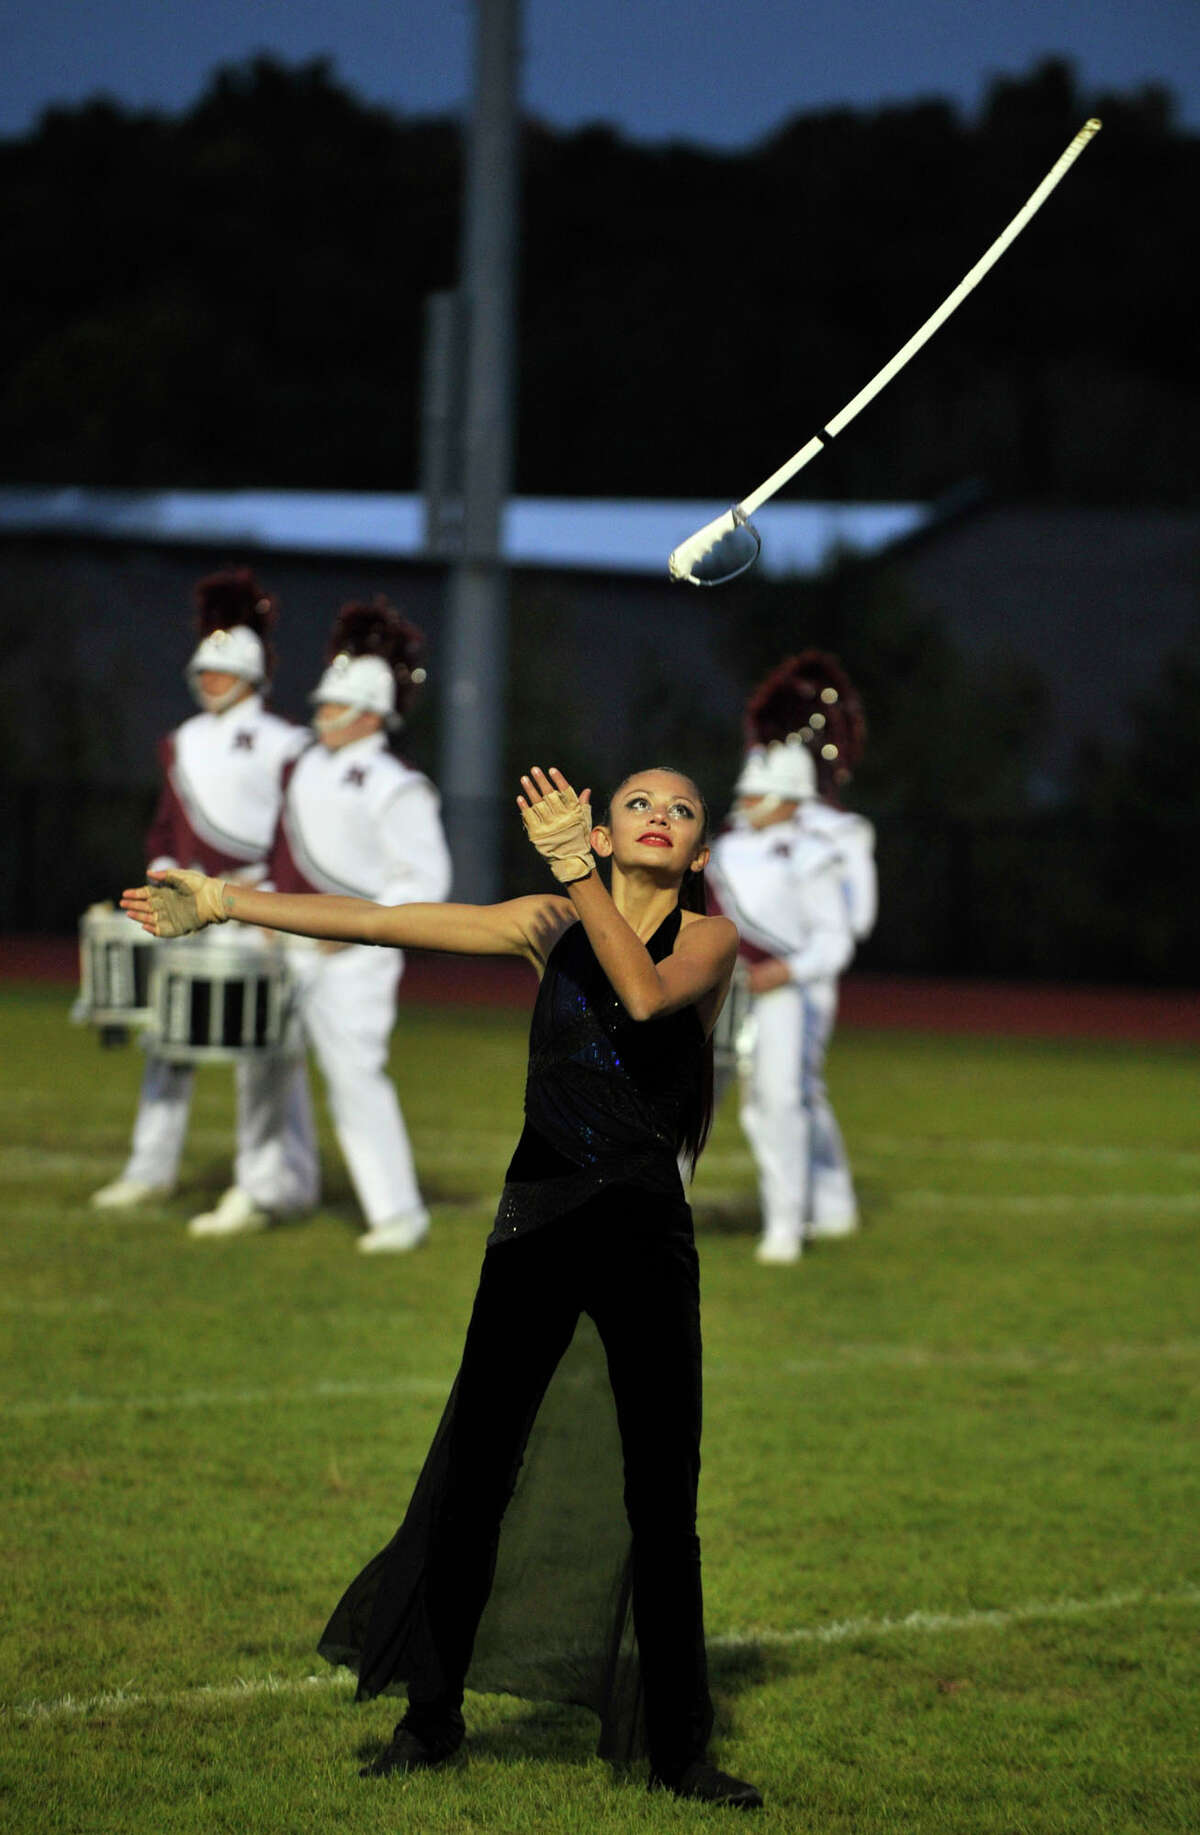 Amber Luis, with the Naugatuck High School color guard, performs at the annual Quest for the Best marching band and color guard competition at Bethel High School on Saturday, Oct. 13, 2012.